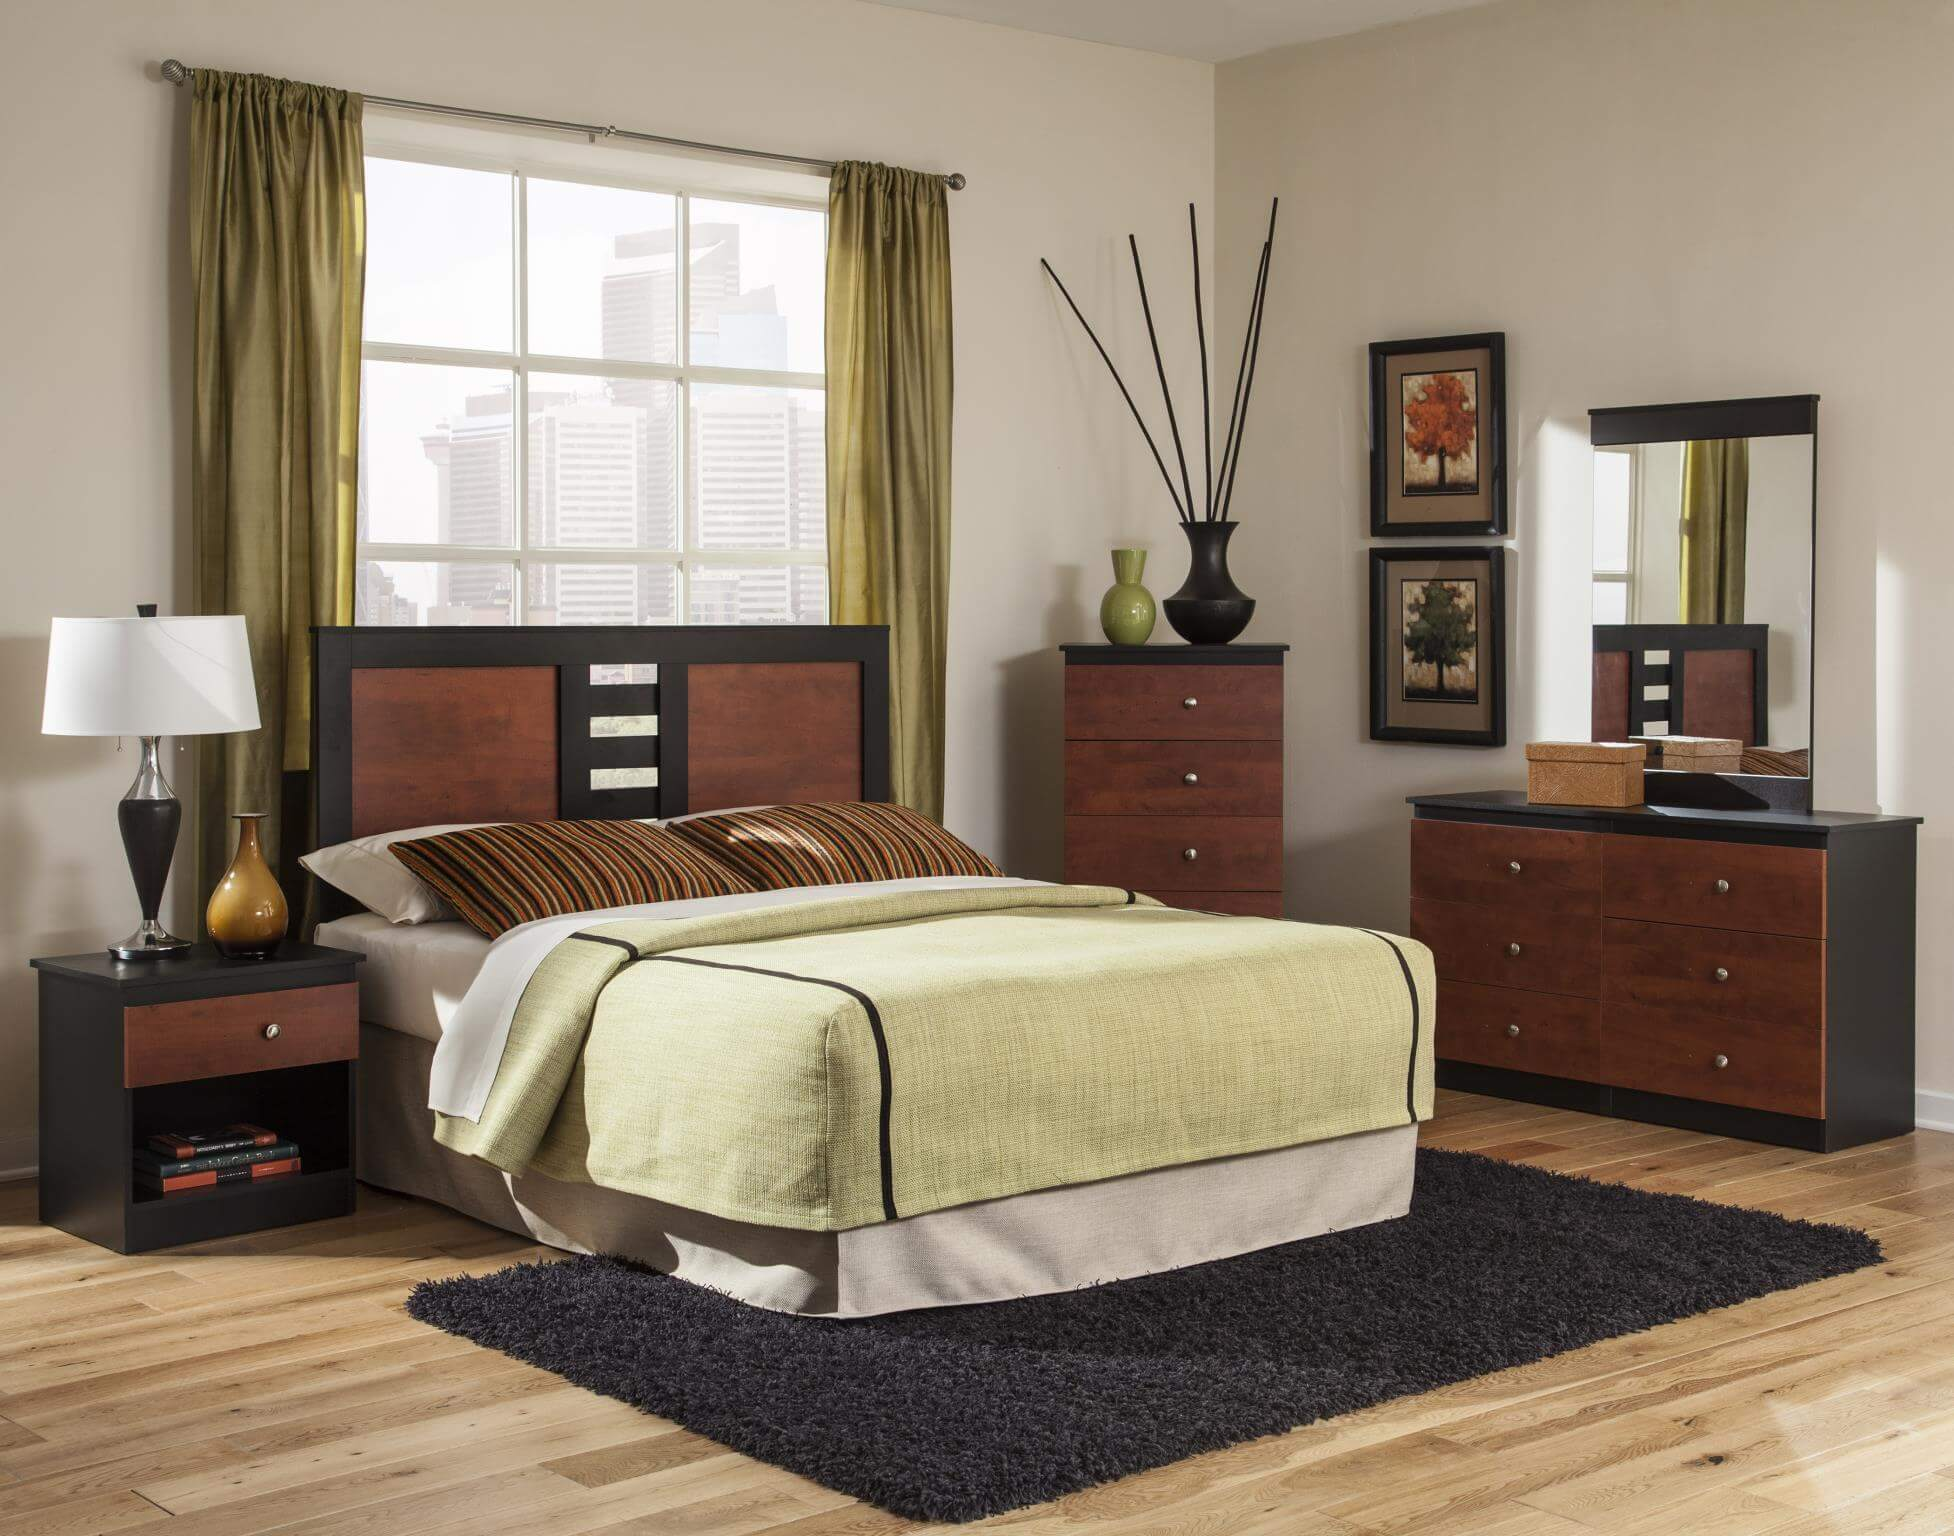 mahogany and black modern bedroom set 14594 | gltb100